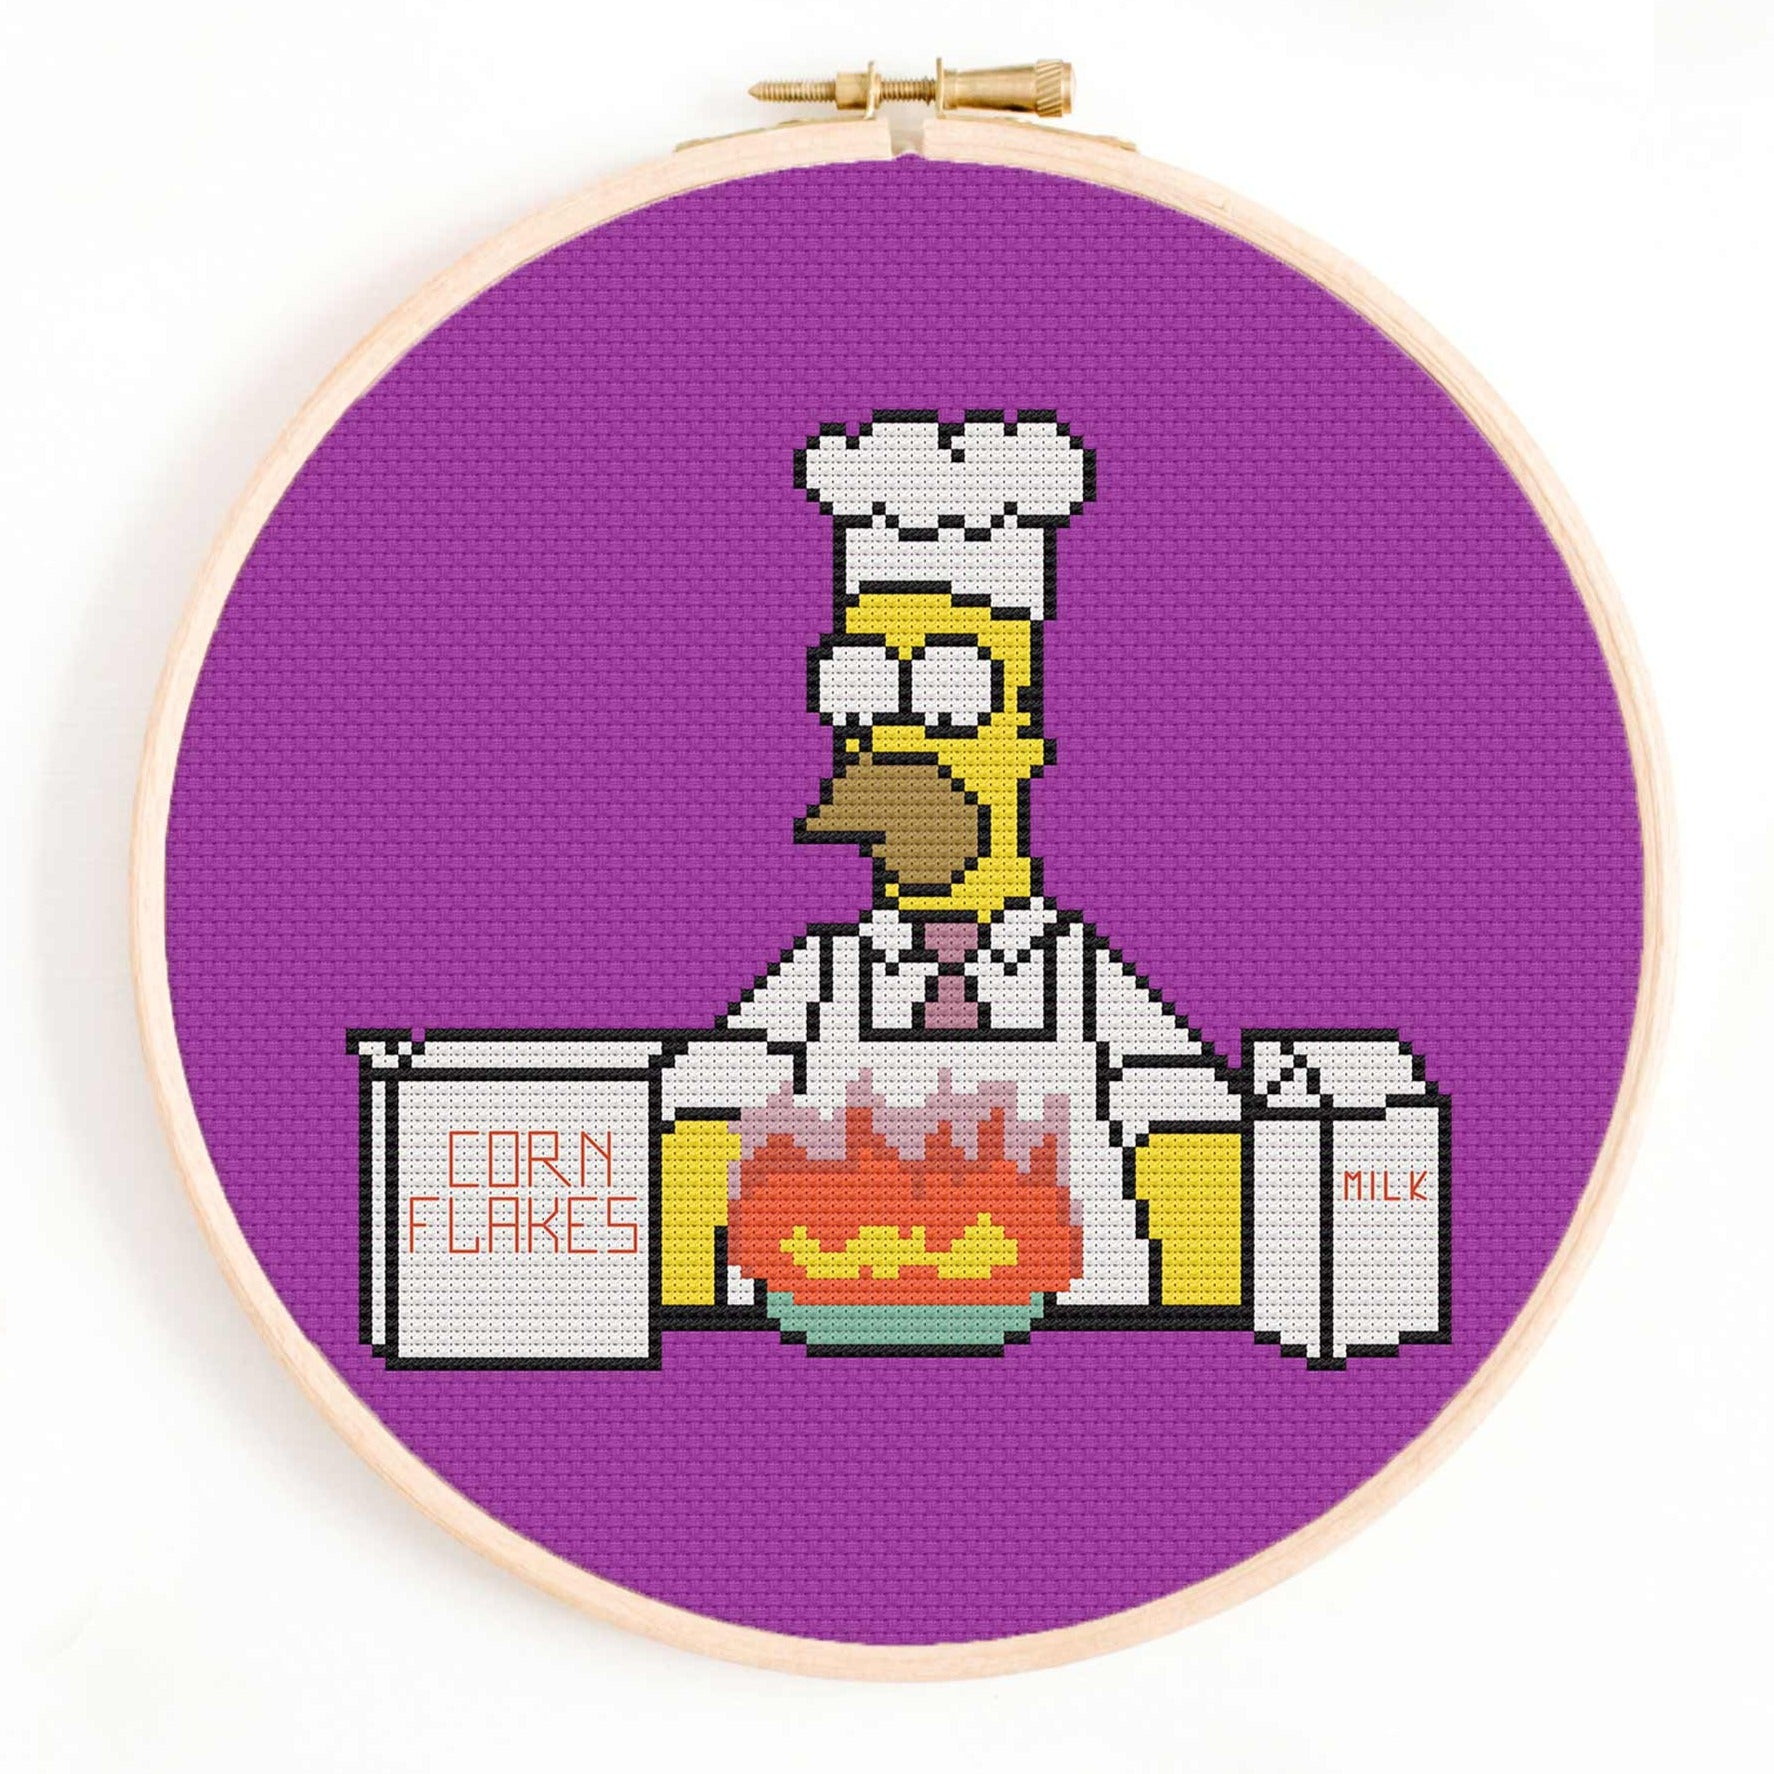 Homer Making Breakfast - The Simpsons Cross Stitch Pattern